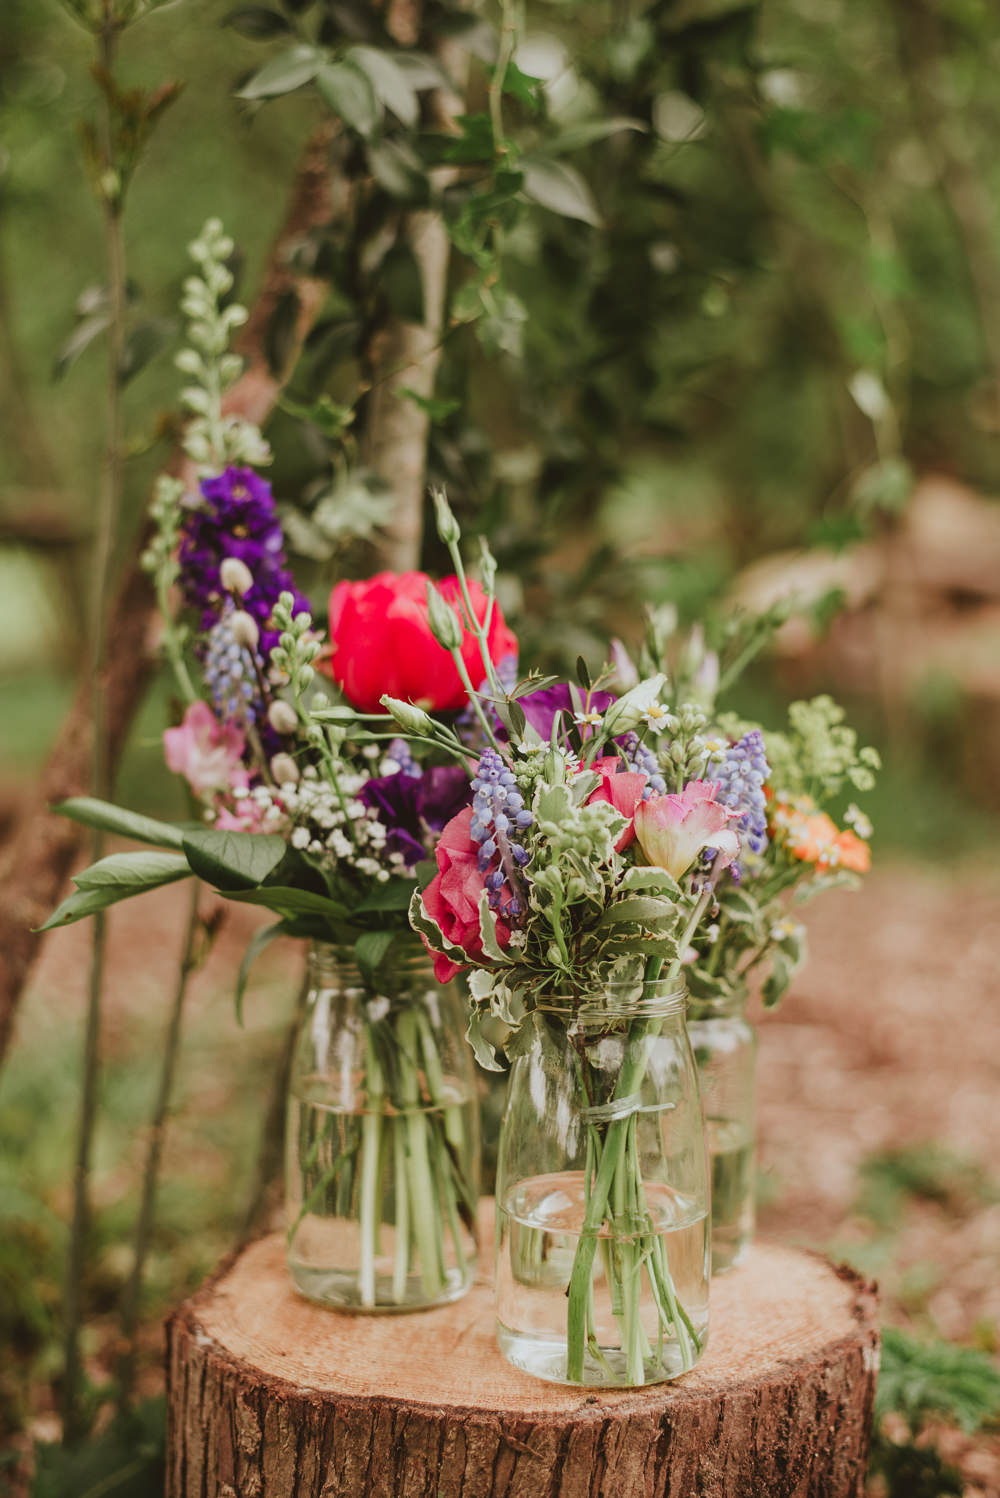 Colourful Jar Flowers Log Stump Tree Peony Stocks Plush Tents Glamping Wedding Big Bouquet Photography